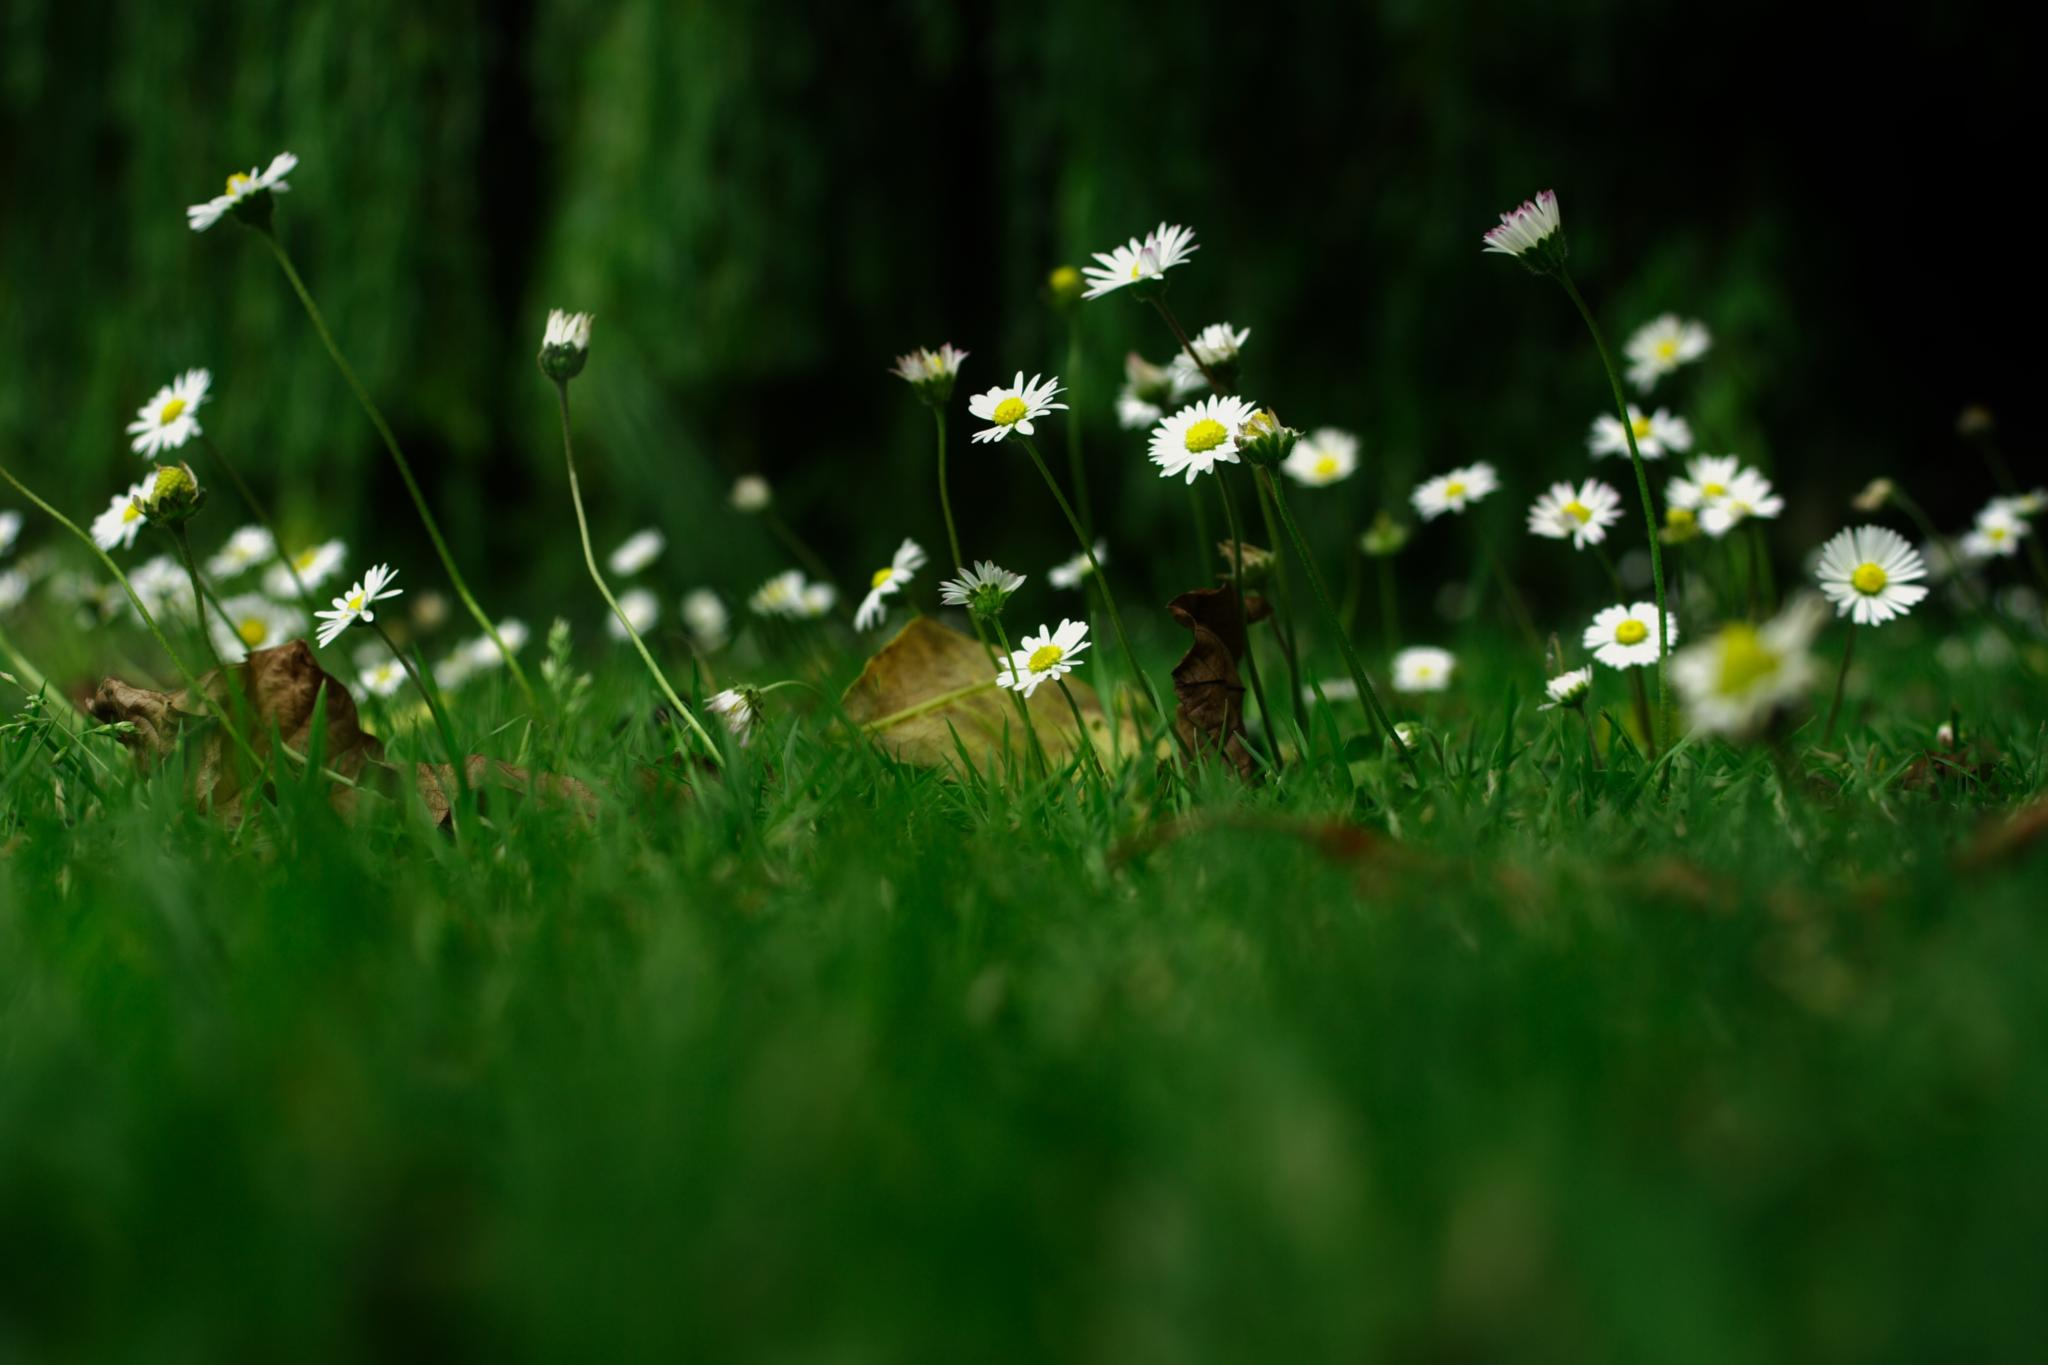 Wall of Daisies by Alex Tan